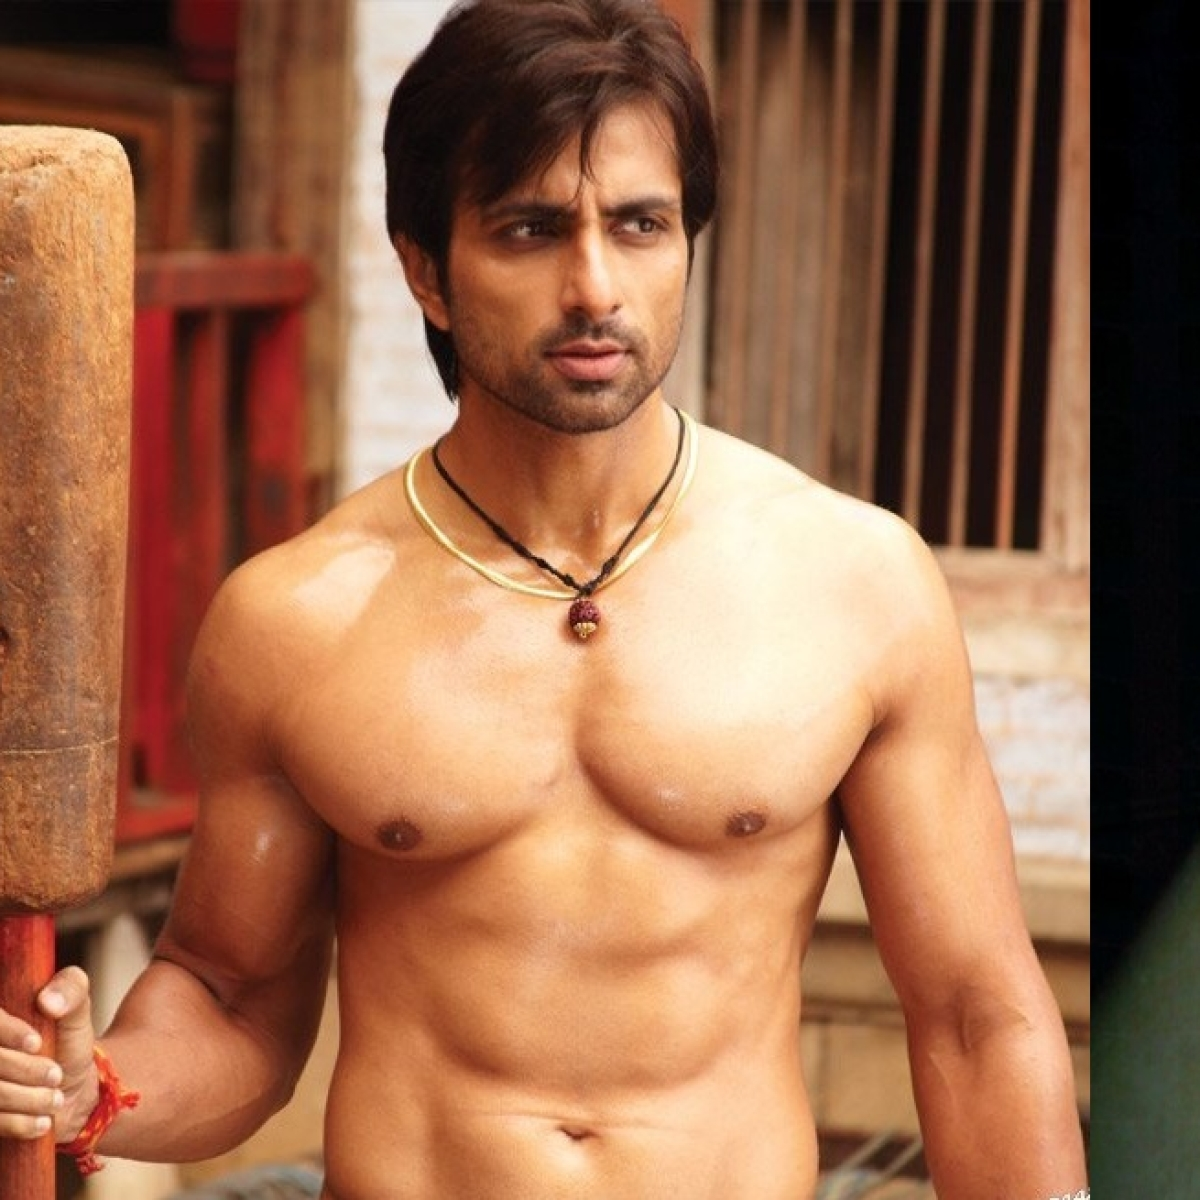 #PostponeJEE_NEETinCOVID: Twitter user who sent Sonu Sood fake wrist cut picture trolled